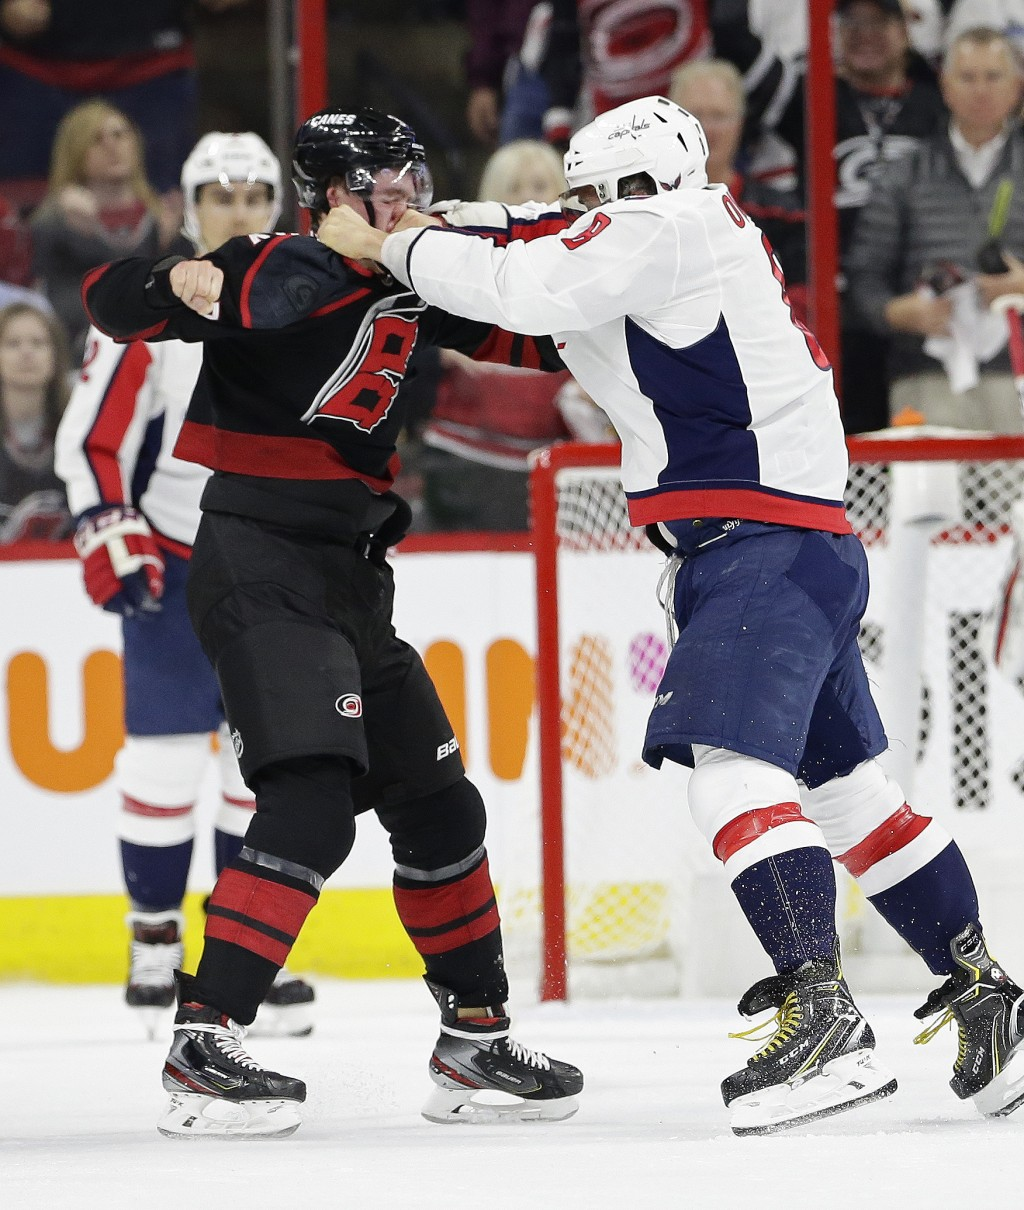 Washington Capitals' Alex Ovechkin, right, of Russia, punches Carolina Hurricanes' Andrei Svechnikov, also of Russia, during the first period of Game